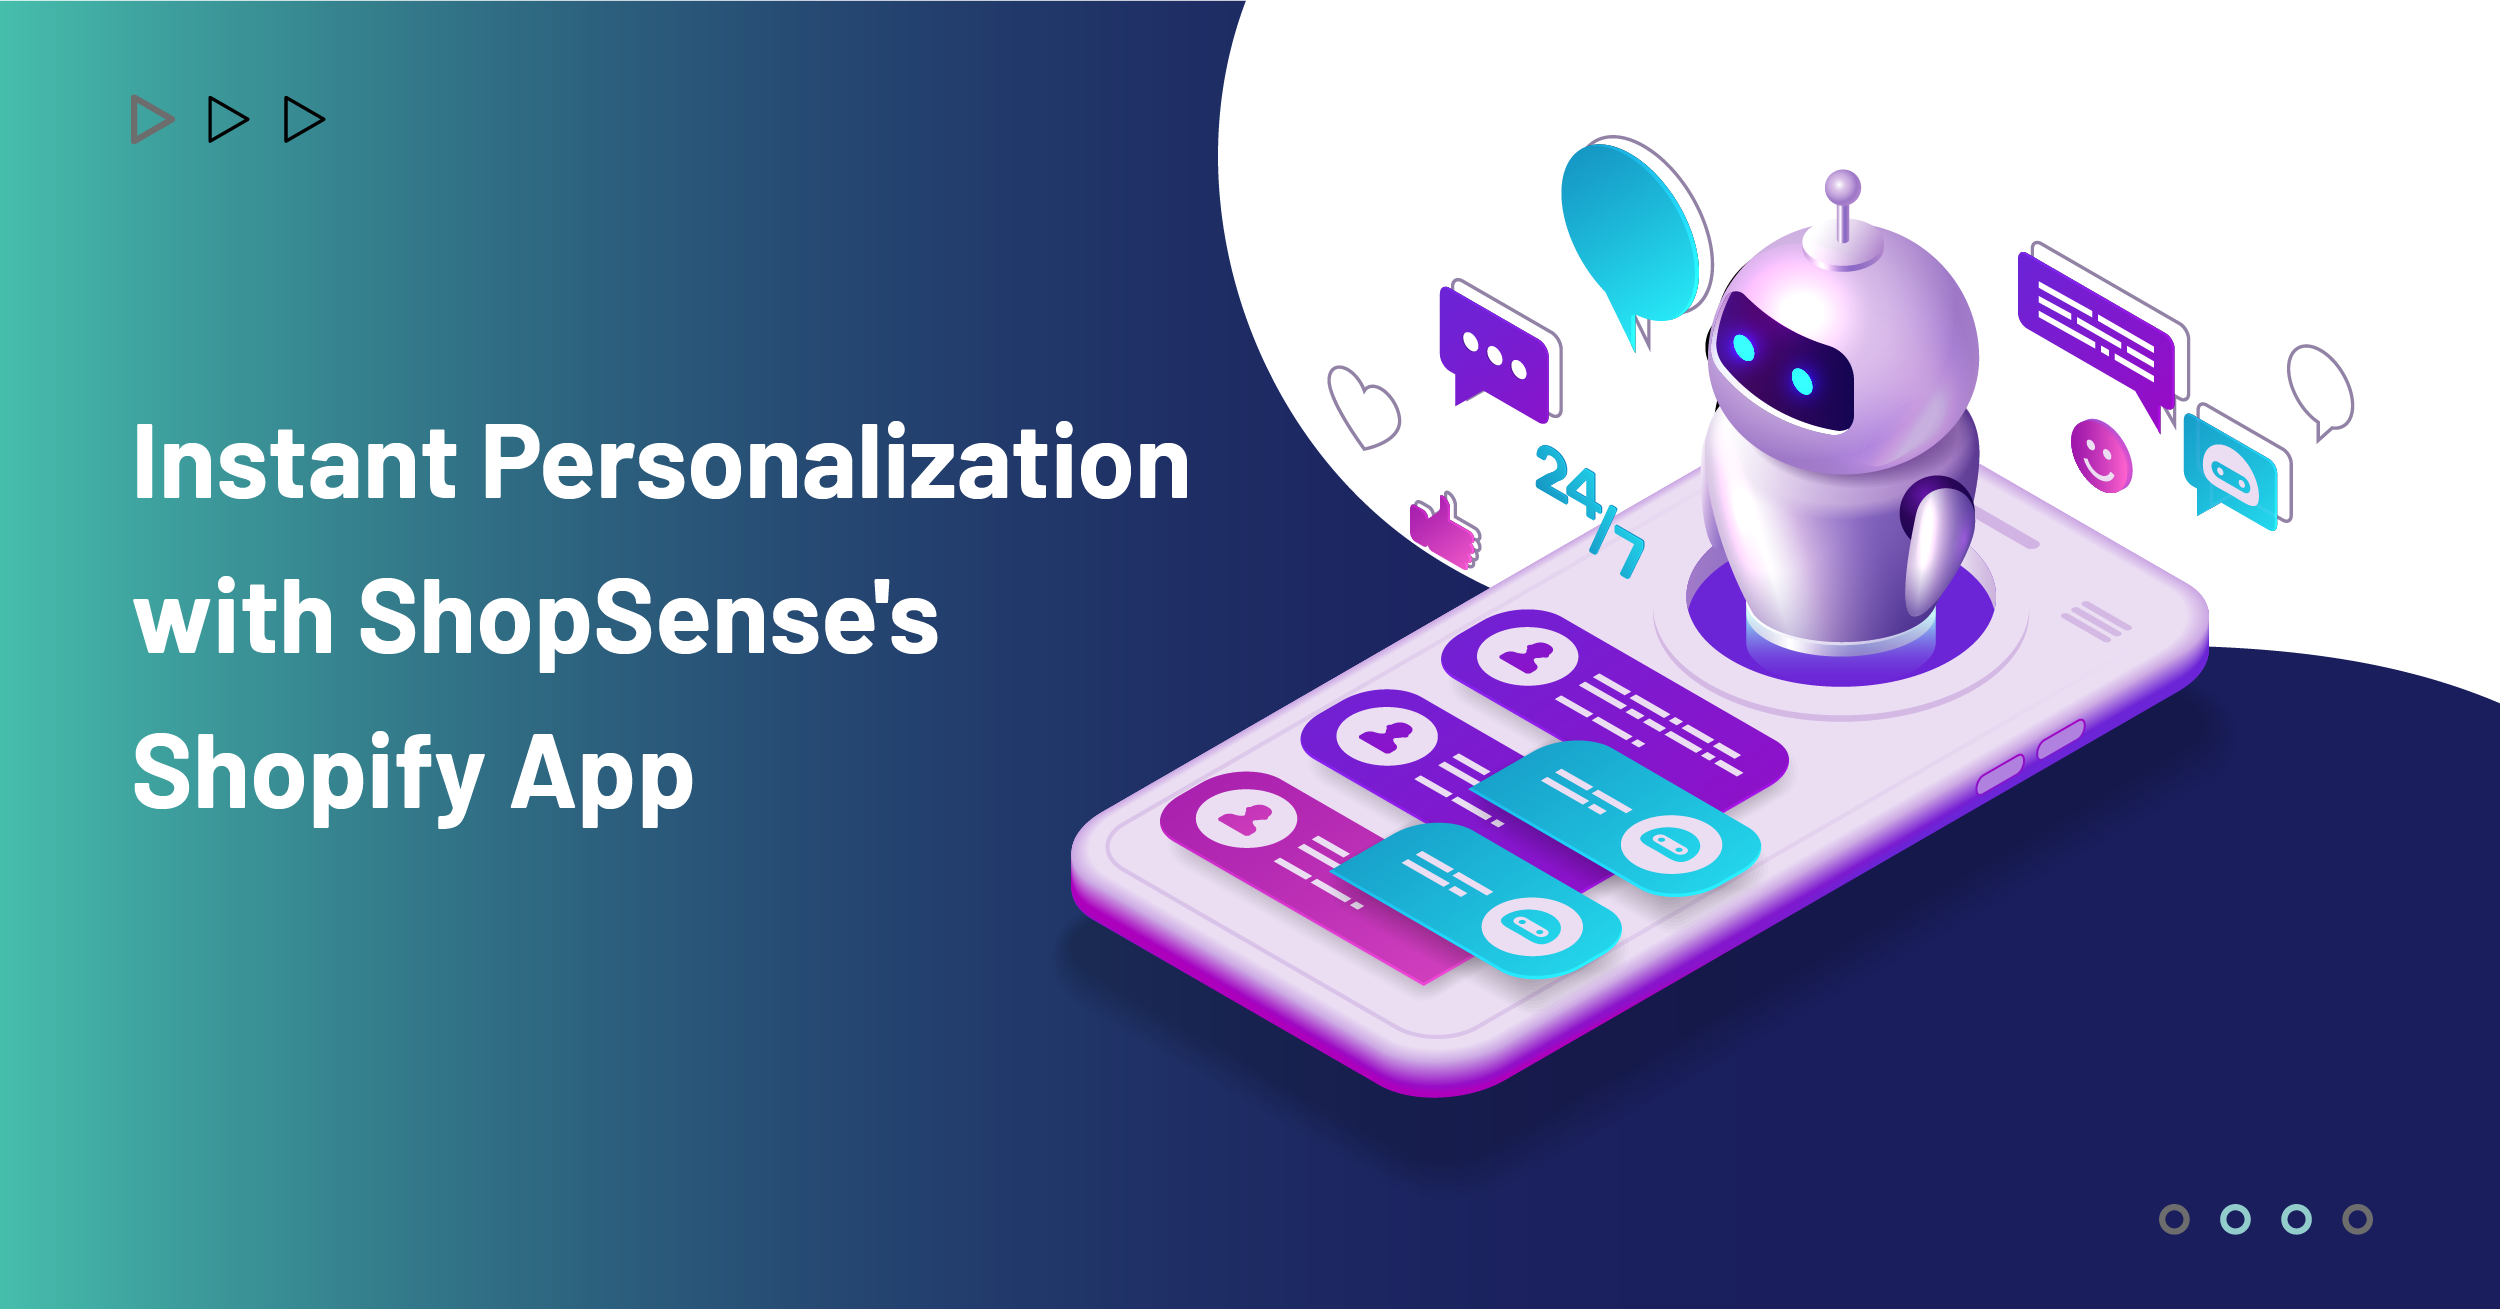 Instant Personalization with ShopSense's Shopify App